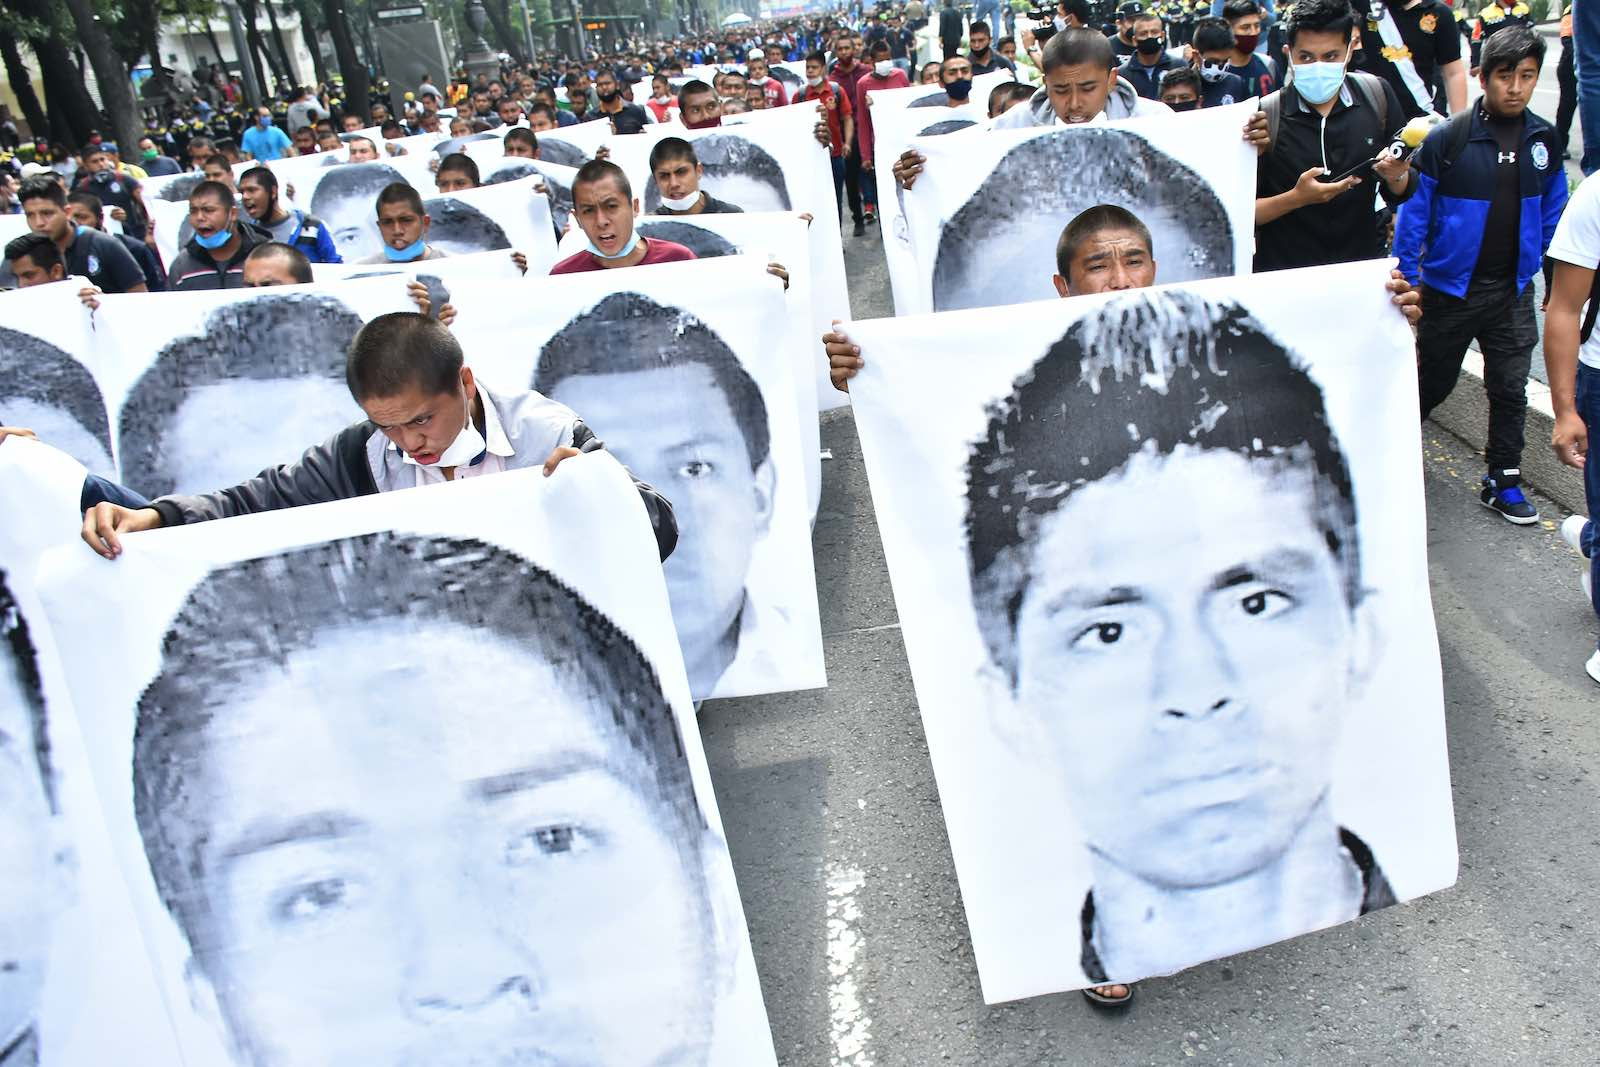 """A protest demanding justice for """"The 43"""" on the anniversary of their disappearance in 2014, Mexico City, 26 September 2020 (Carlos Tischler/Eyepix Group/Barcroft Media via Getty Images)"""